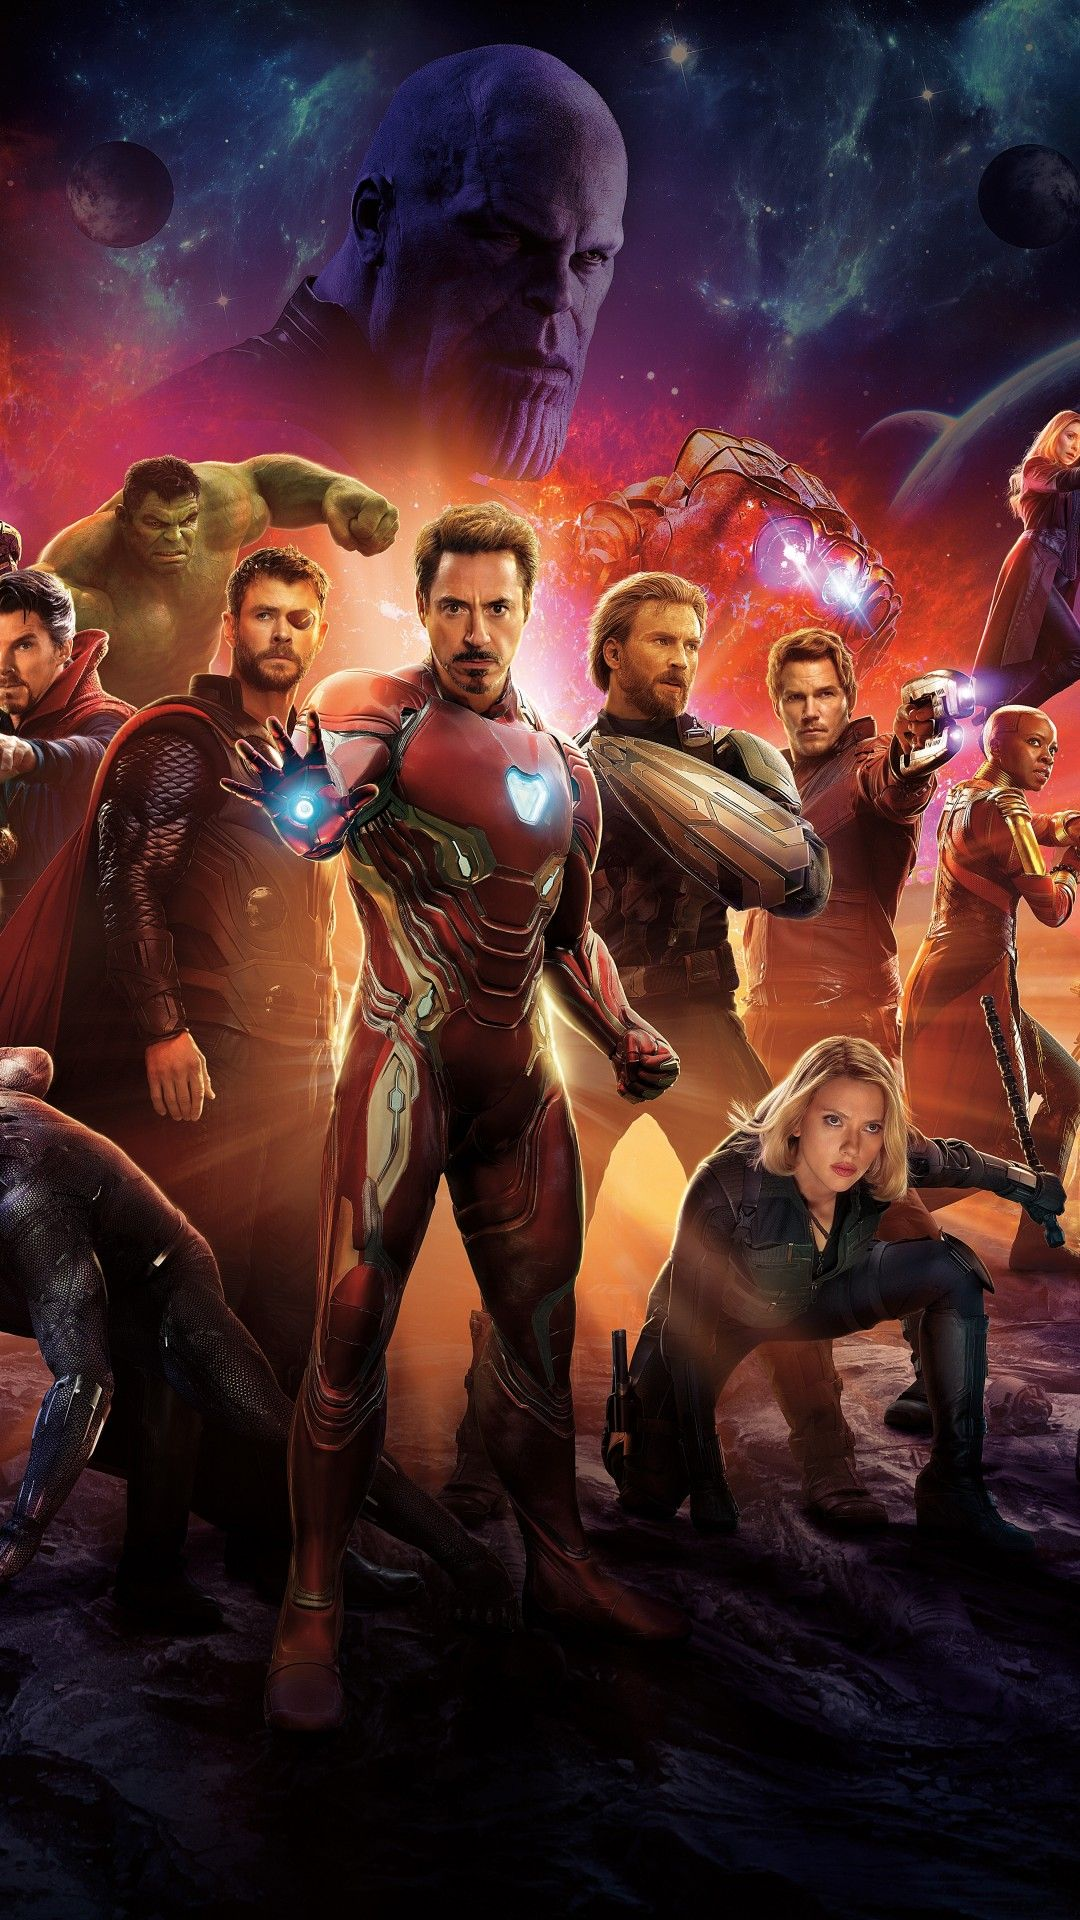 Iron Man Infinity War Wallpaper Hd Marvel Infinity War Avengers Wallpaper Marvel Comics Superheroes